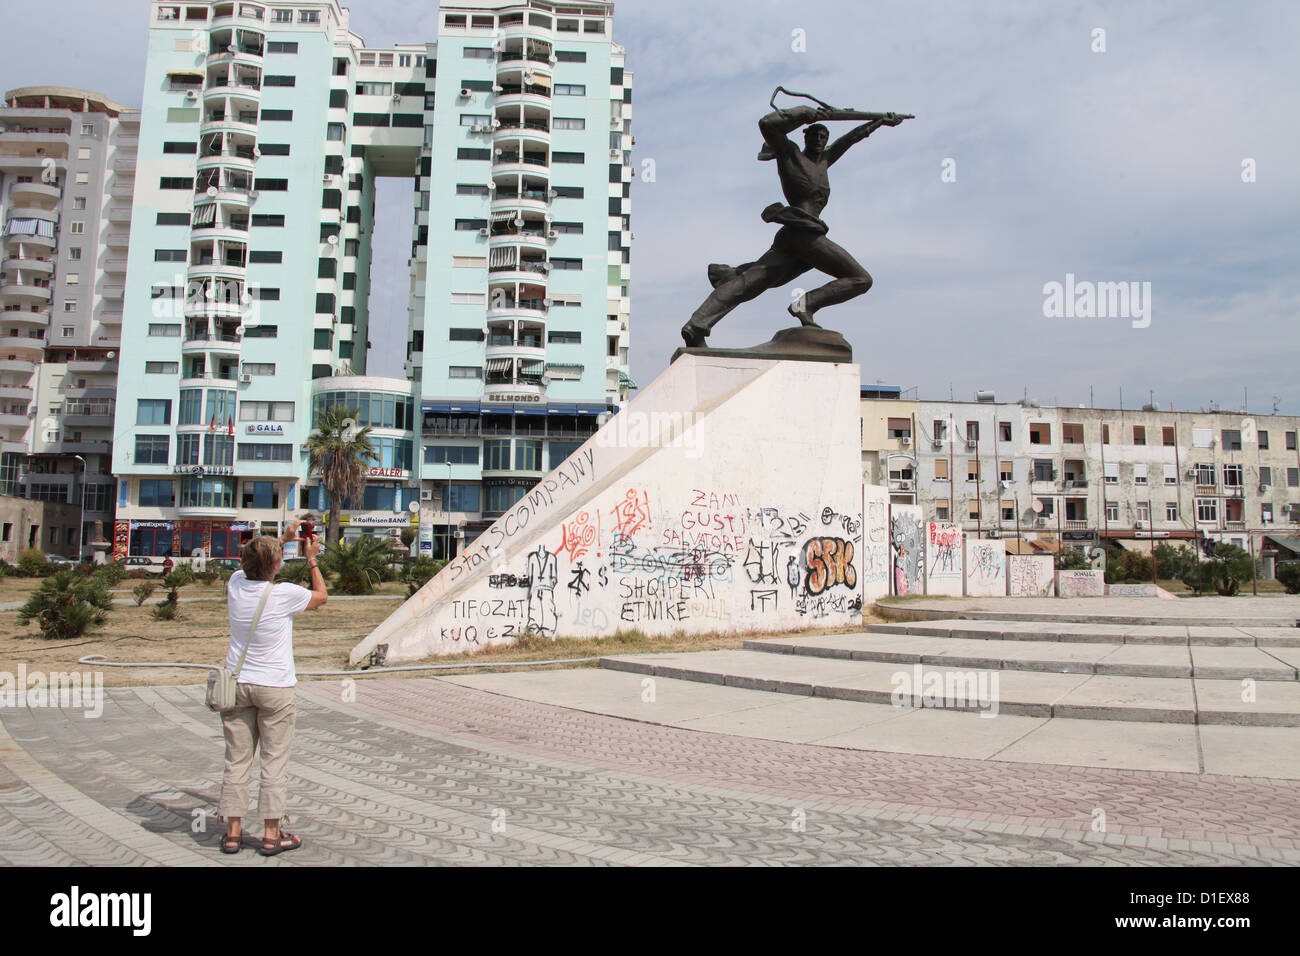 Tourist Photographing the Socialist Realism Statue of a Soldier at Durres in Albania - Stock Image